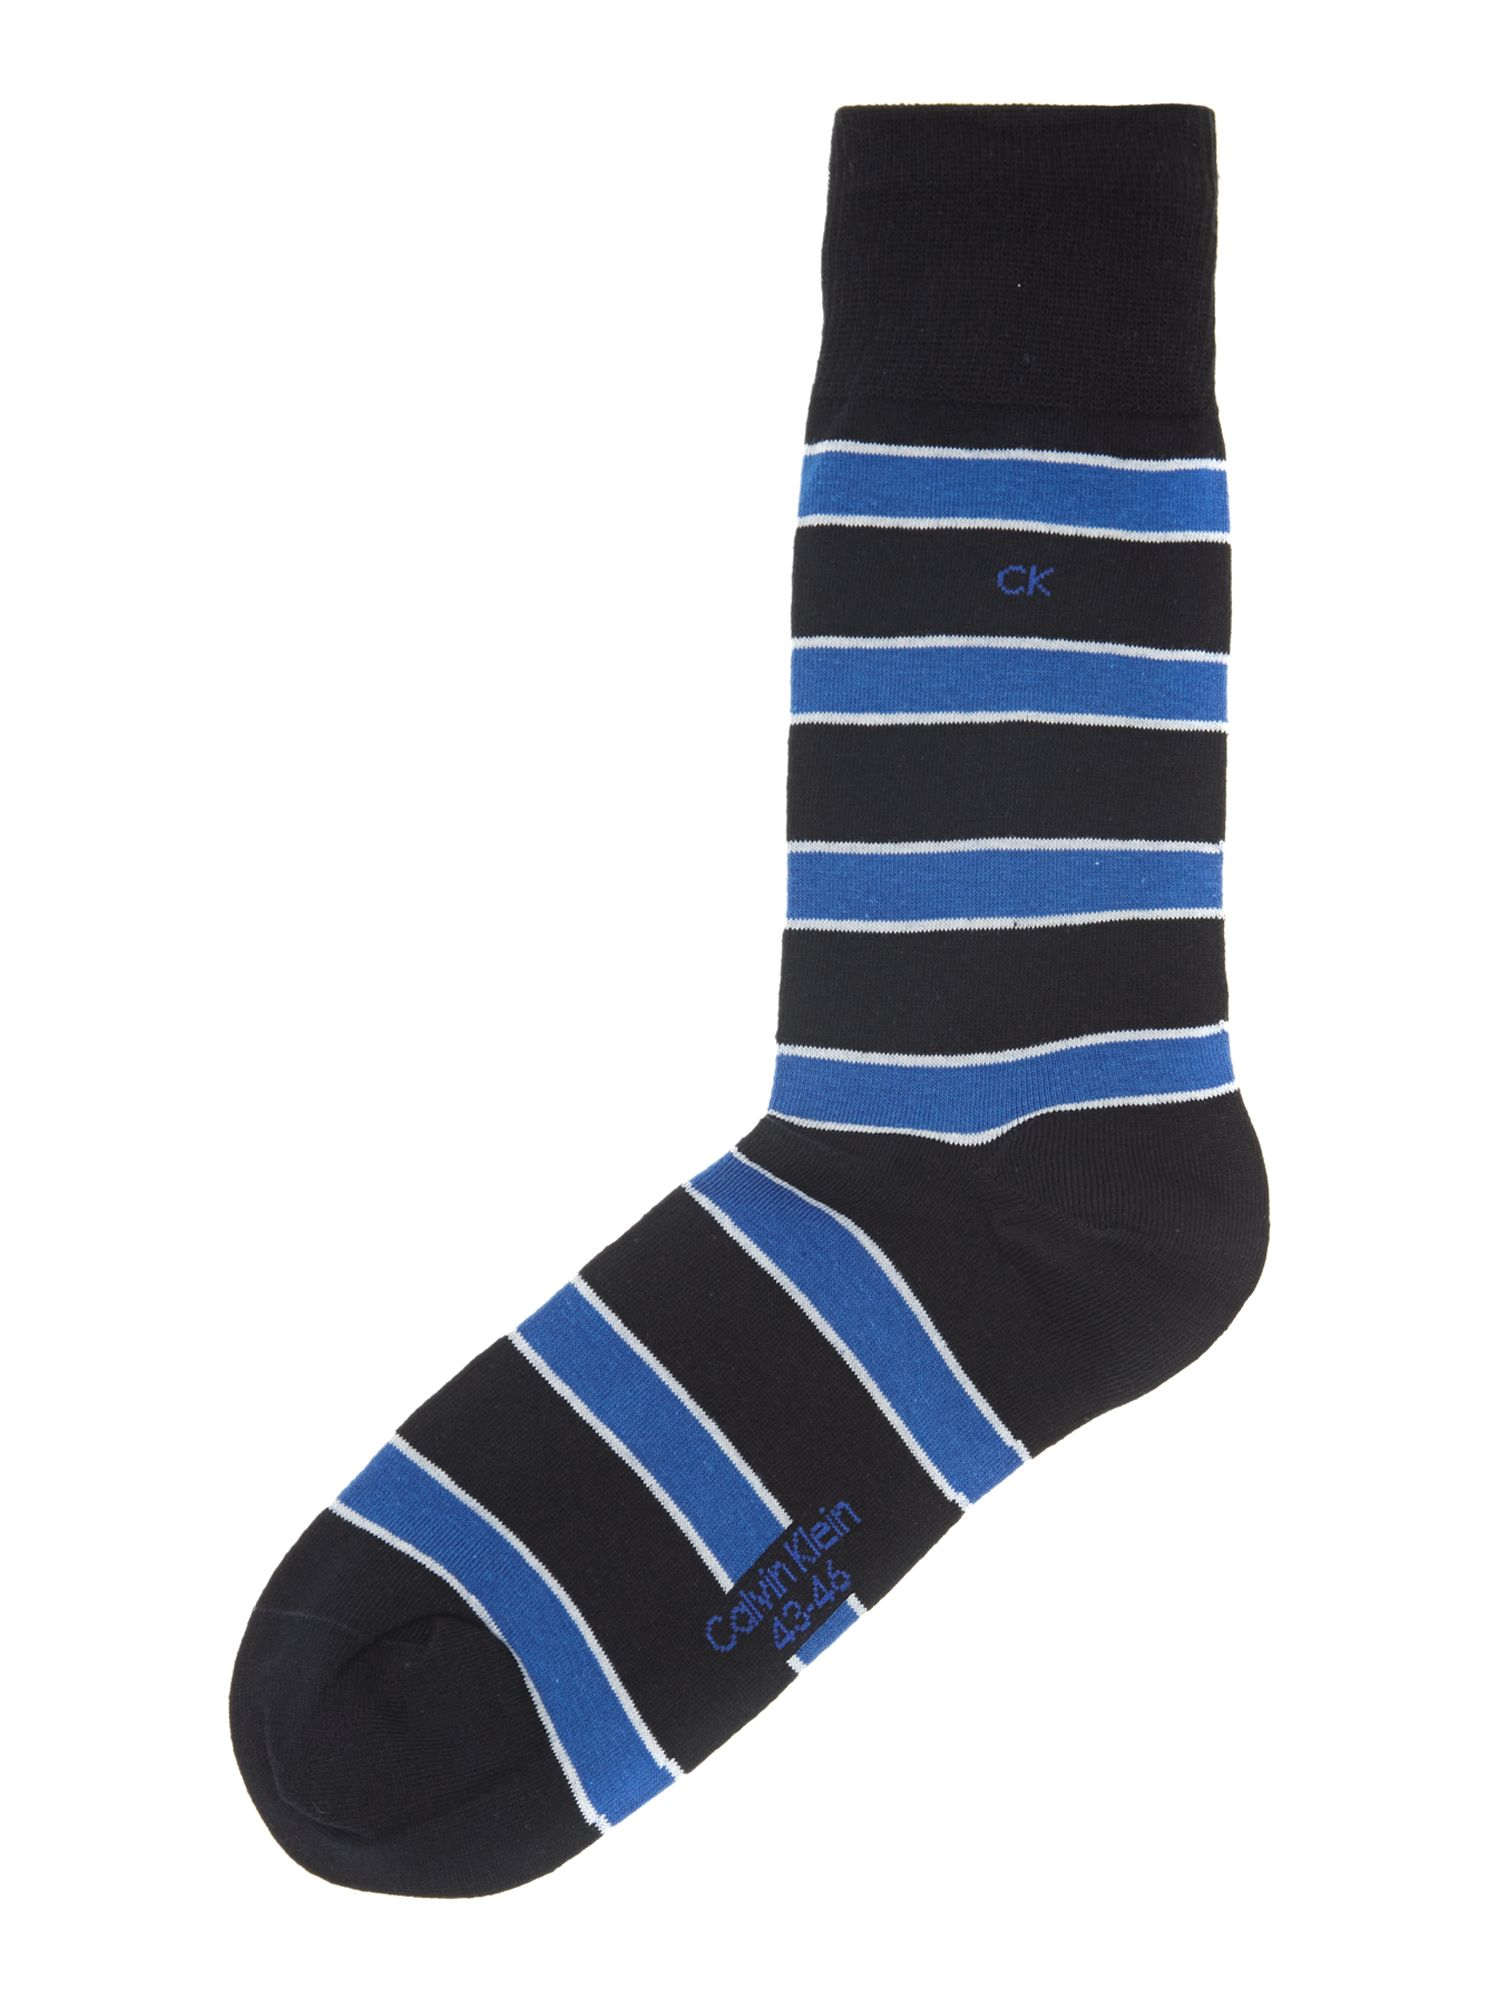 2 pack multistripe and plain sock